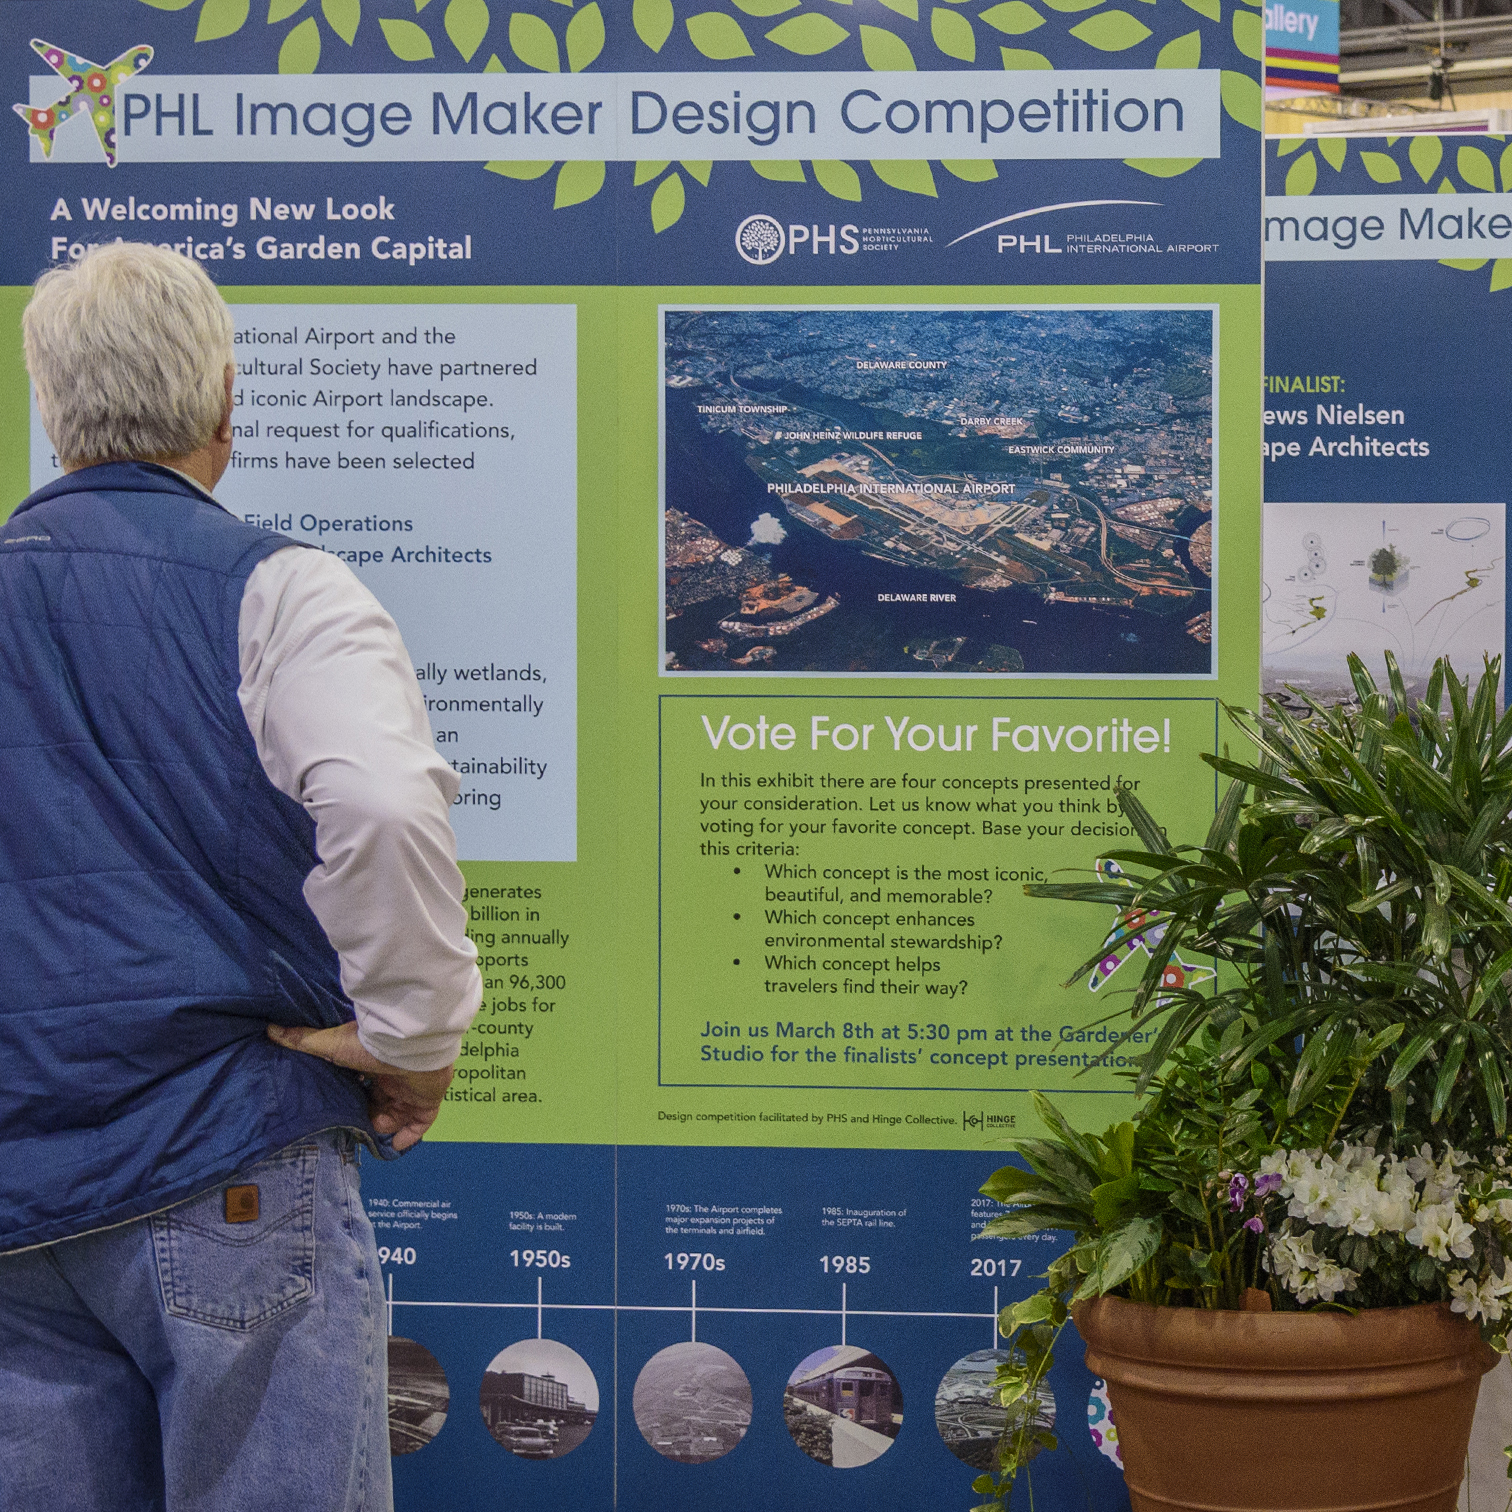 Exhibit for the PHL Image Maker Landscape Design Competition at the 2018 PHS Philadelphia Flower Show.